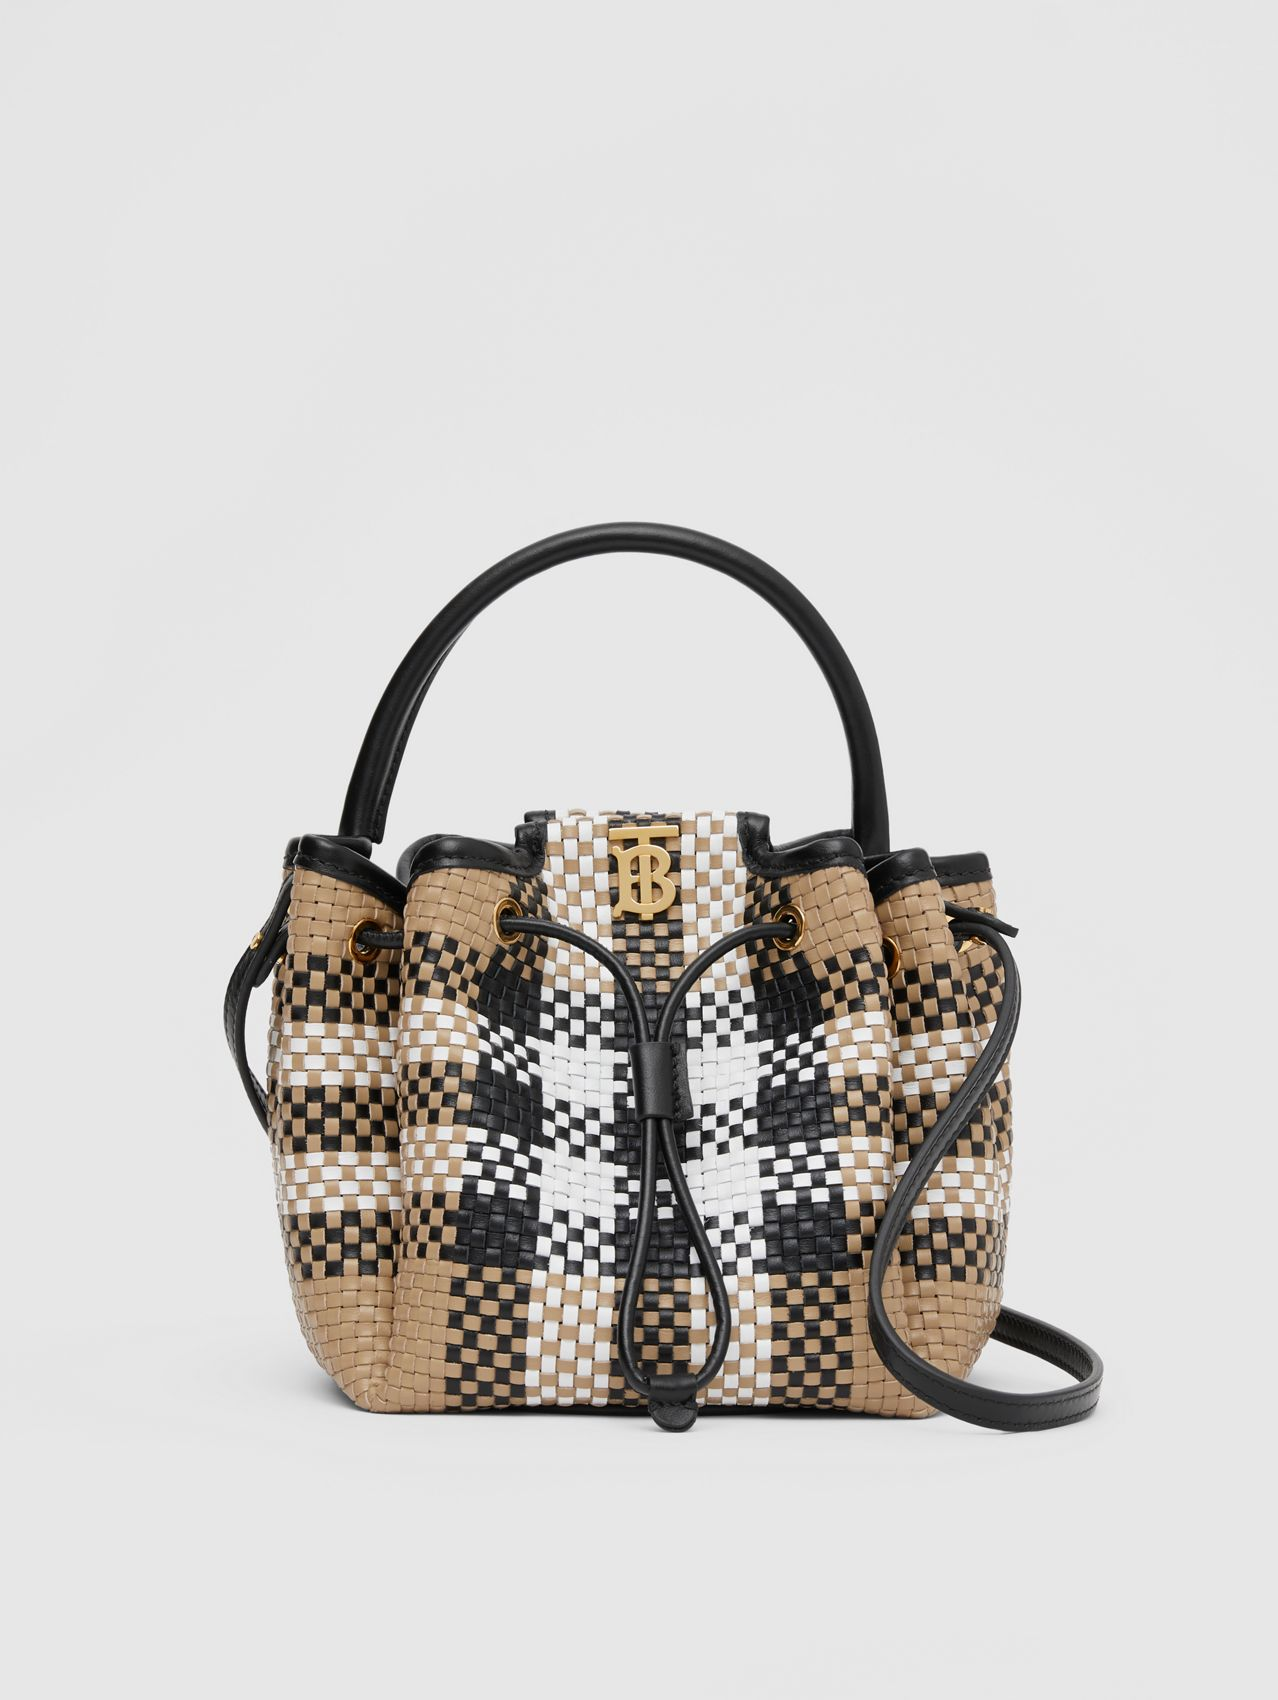 Monogram Motif Latticed Leather Bucket Bag in Archive Beige